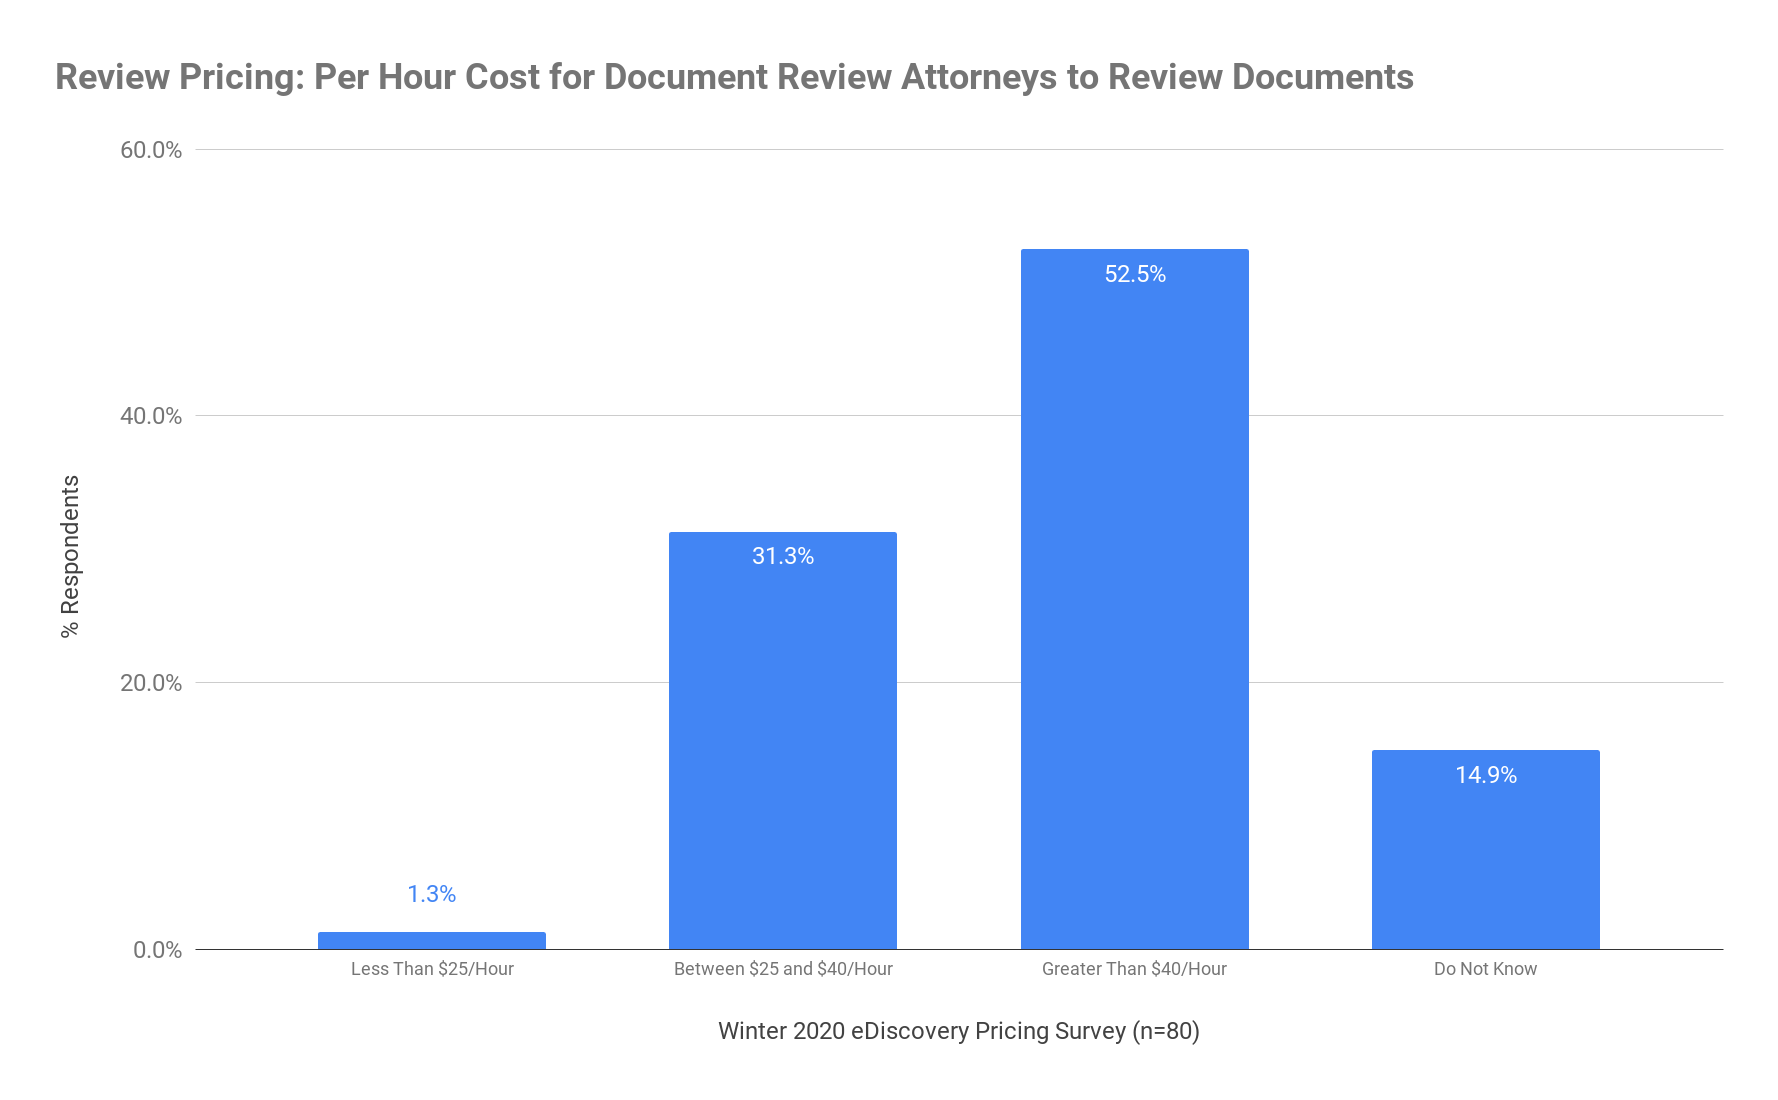 Review Pricing - Per Hour Cost for Document Review Attorneys to Review Documents - Winter 2020